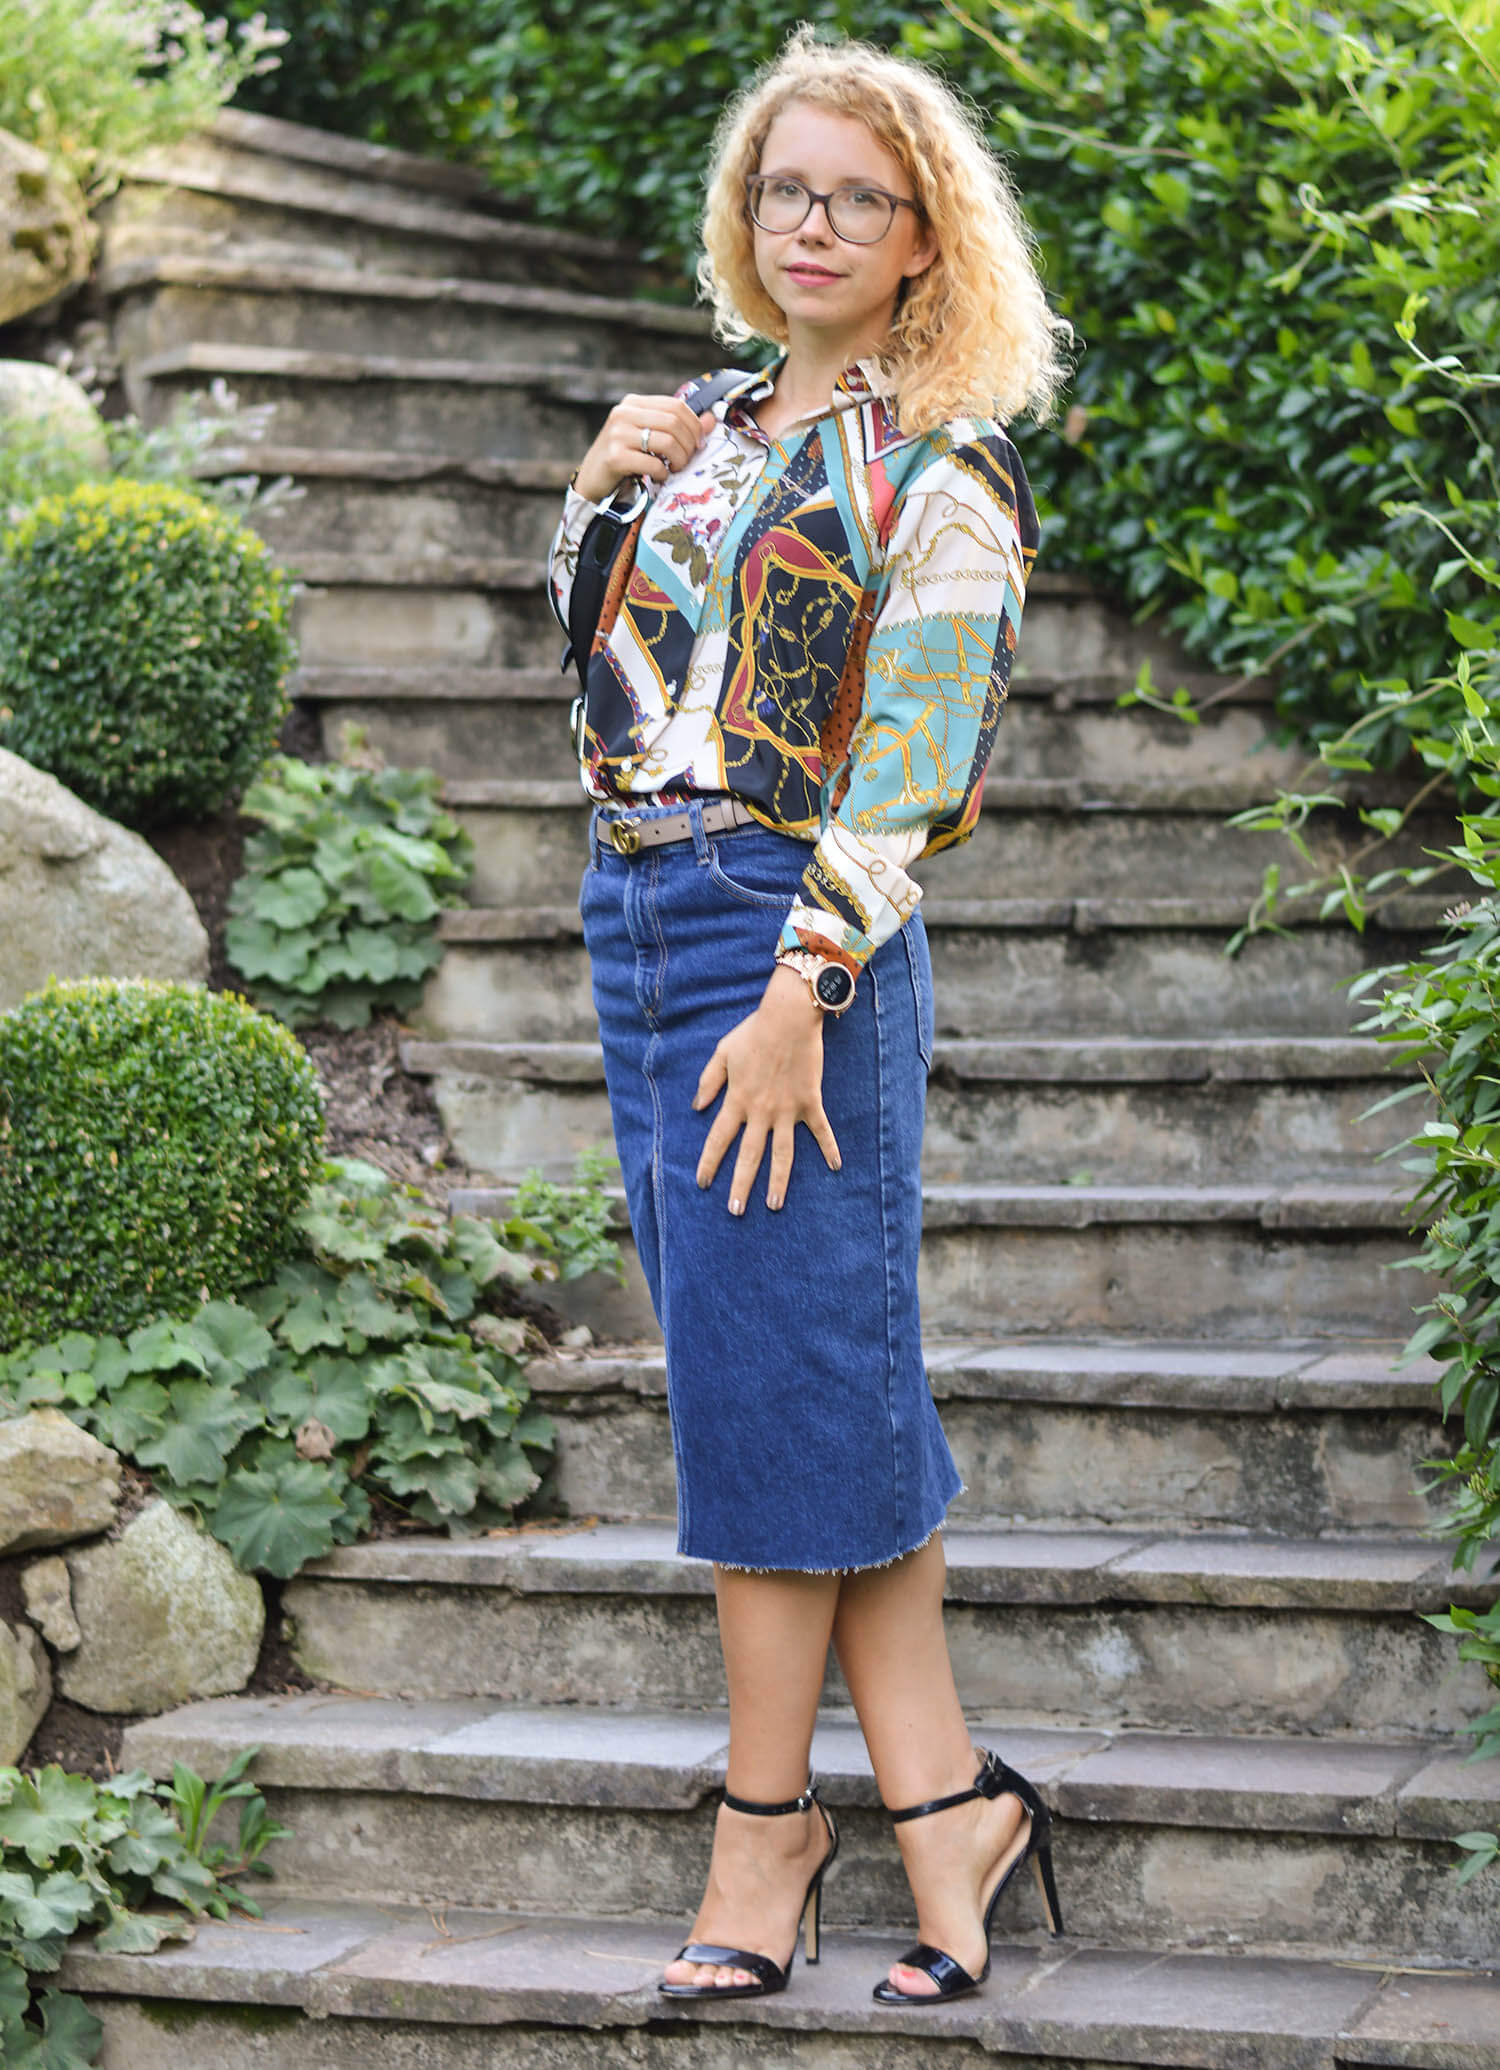 Outfit-Denim-Pencil-Skirt-Chain-Print-Blouse-and-Life-Update-kationette